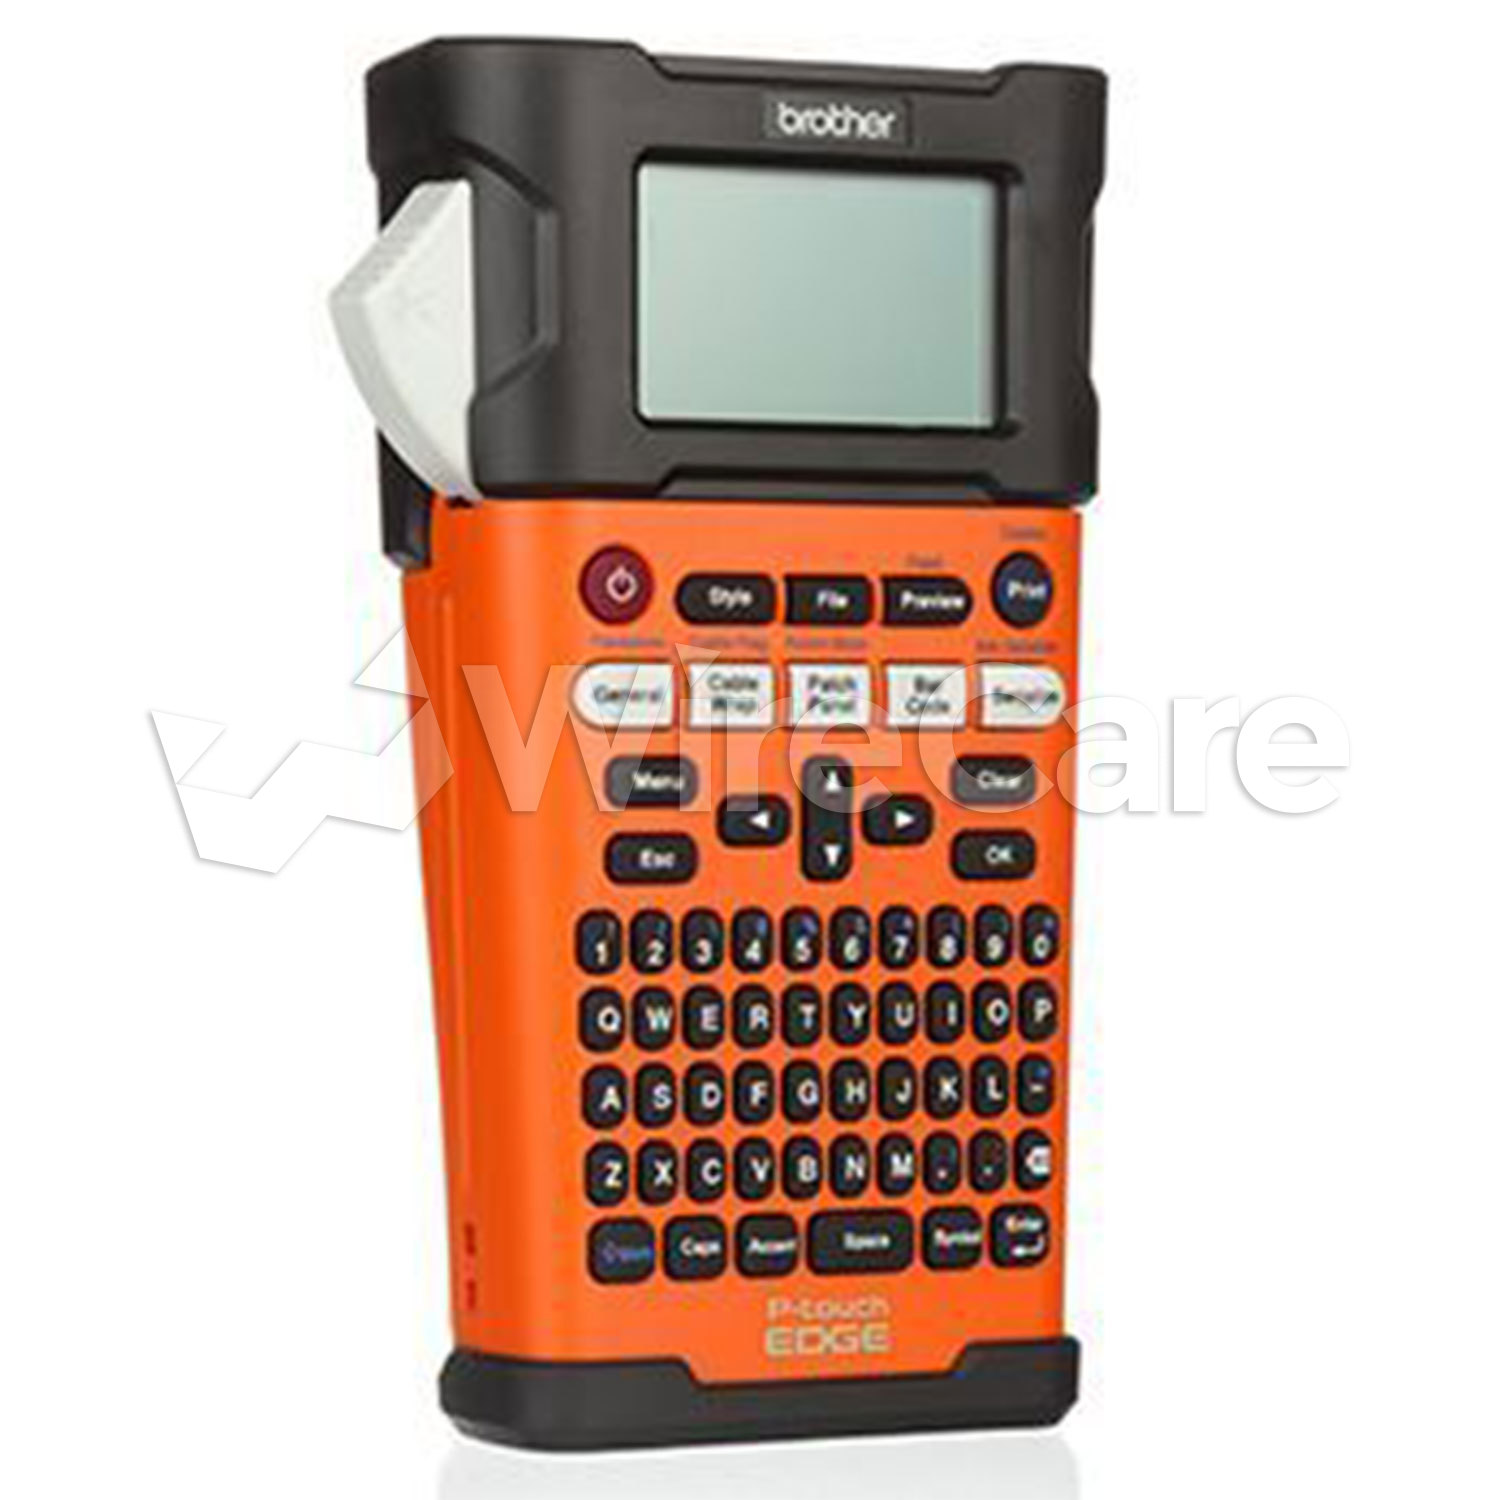 Brother PTE300 Industrial Handheld Labeling Tool with Rechargeable Li-ion Battery for sale online